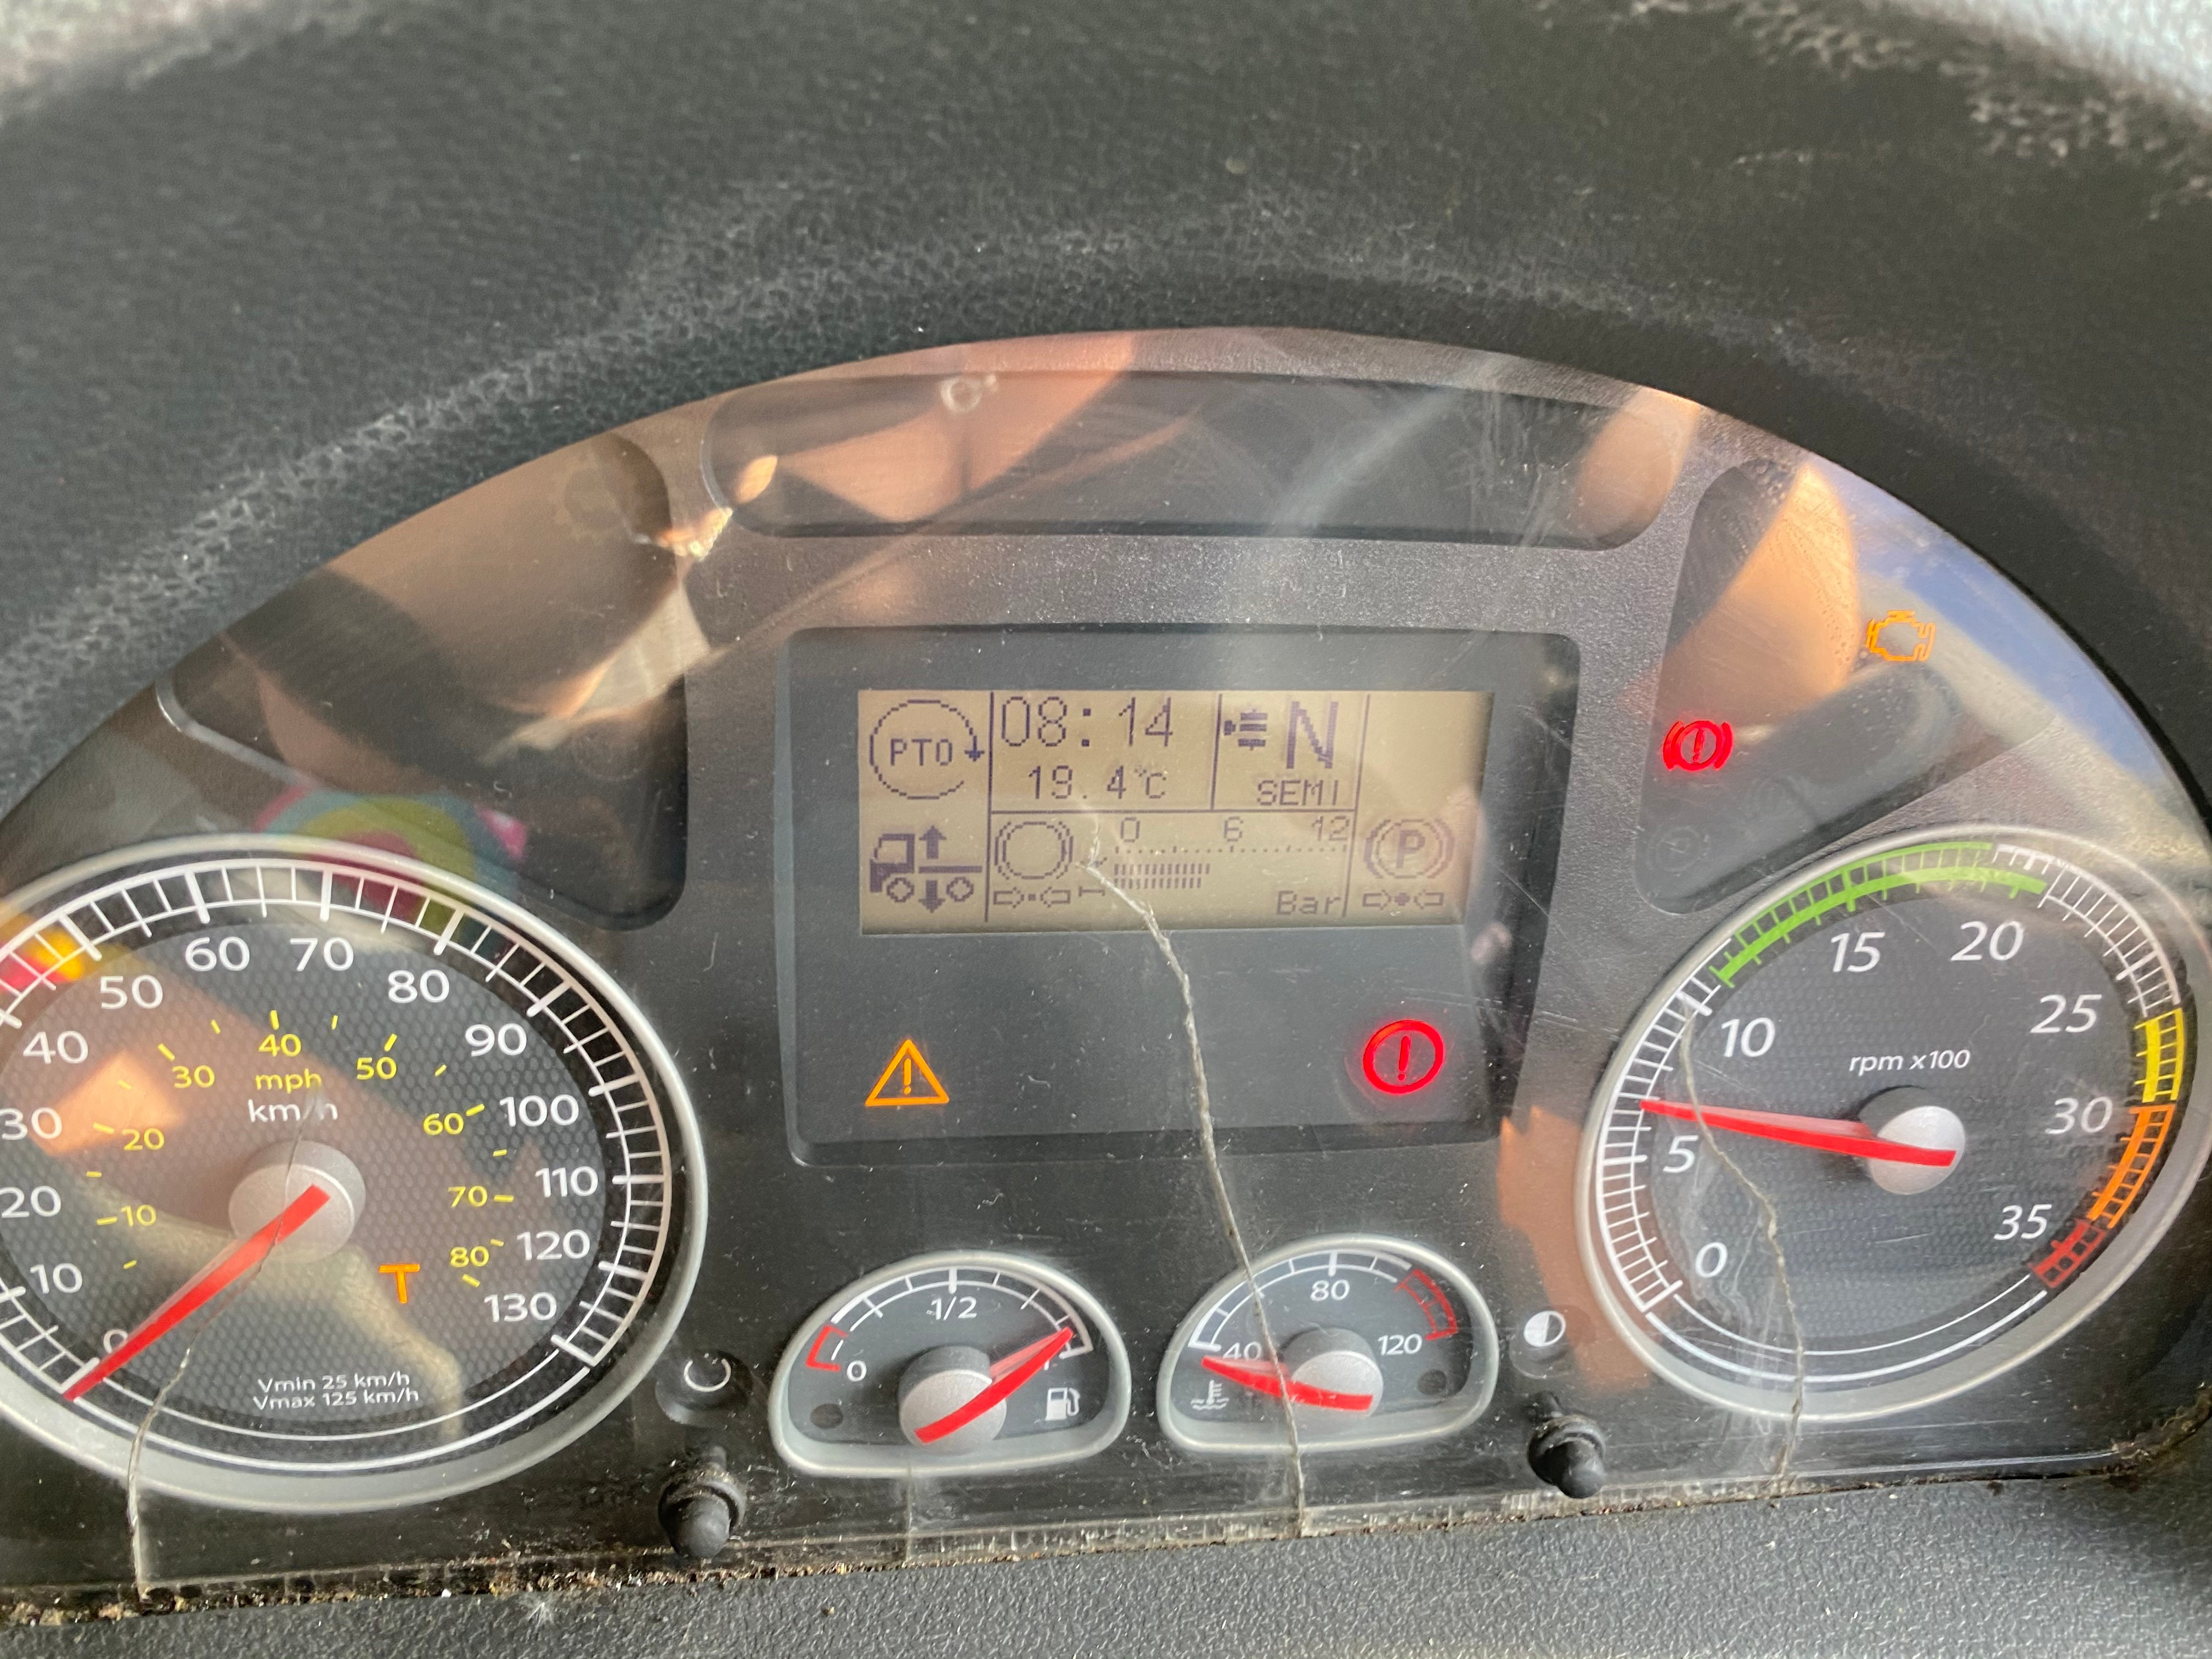 I Need Some Help With Dashboard Lights Of A Iveco Eurocargo 2009 Thanks